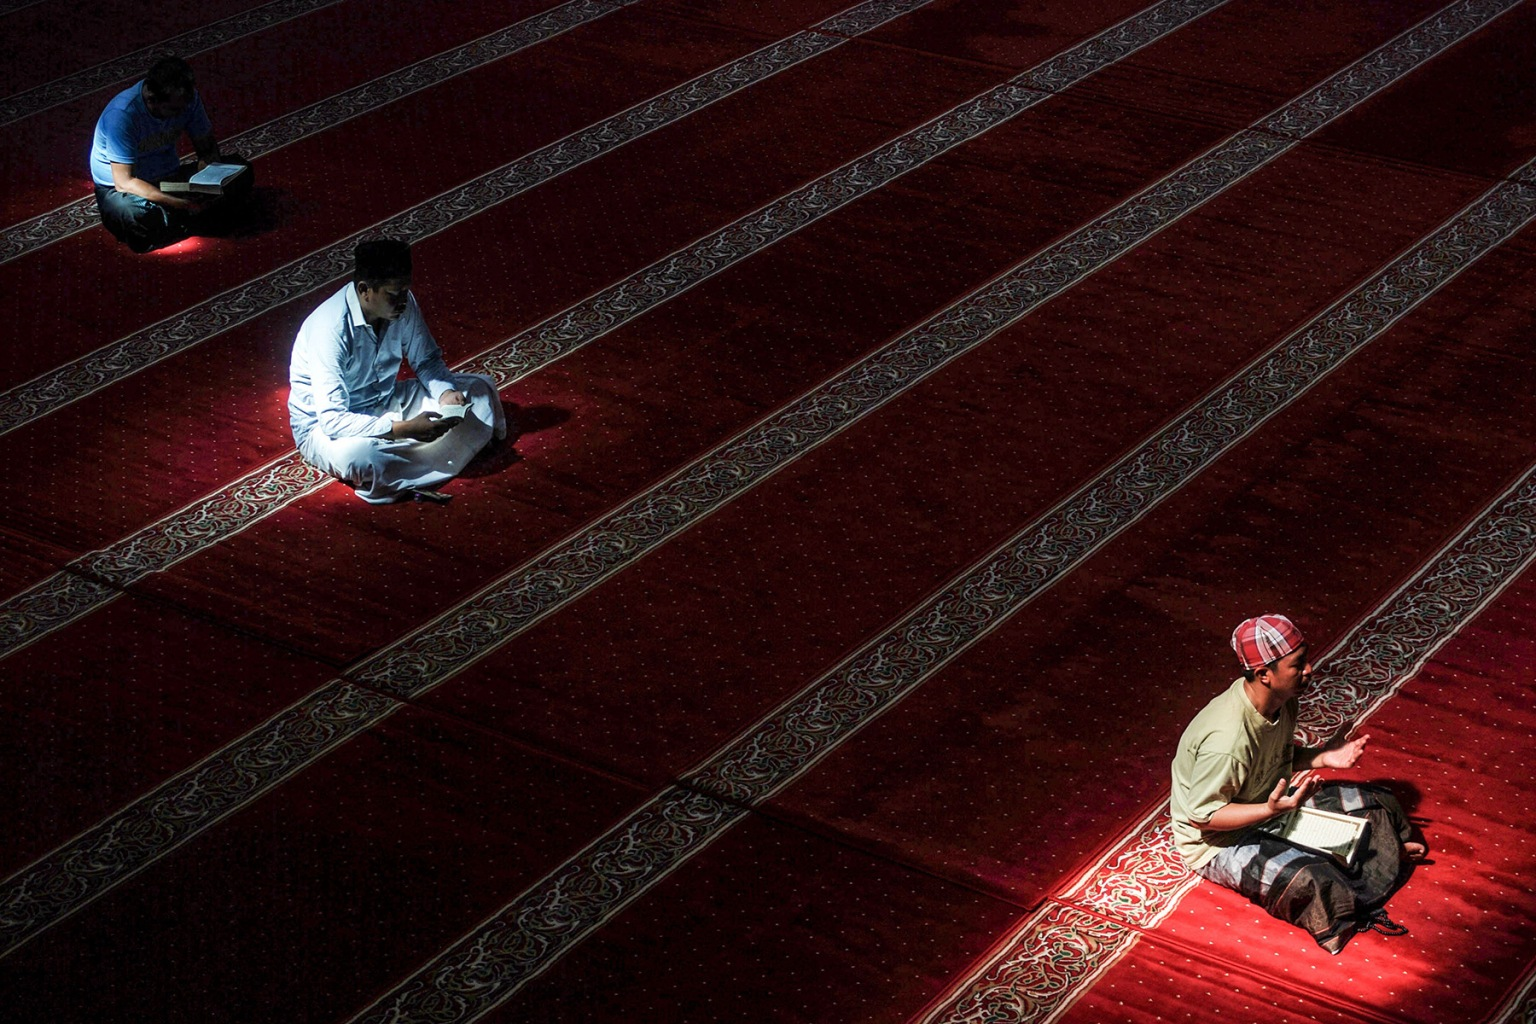 Indonesian Muslims read the Quran at a mosque in Bandung, West Java, on May 23 during the holy month of Ramadan. TIMUR MATAHARI/AFP/Getty Images